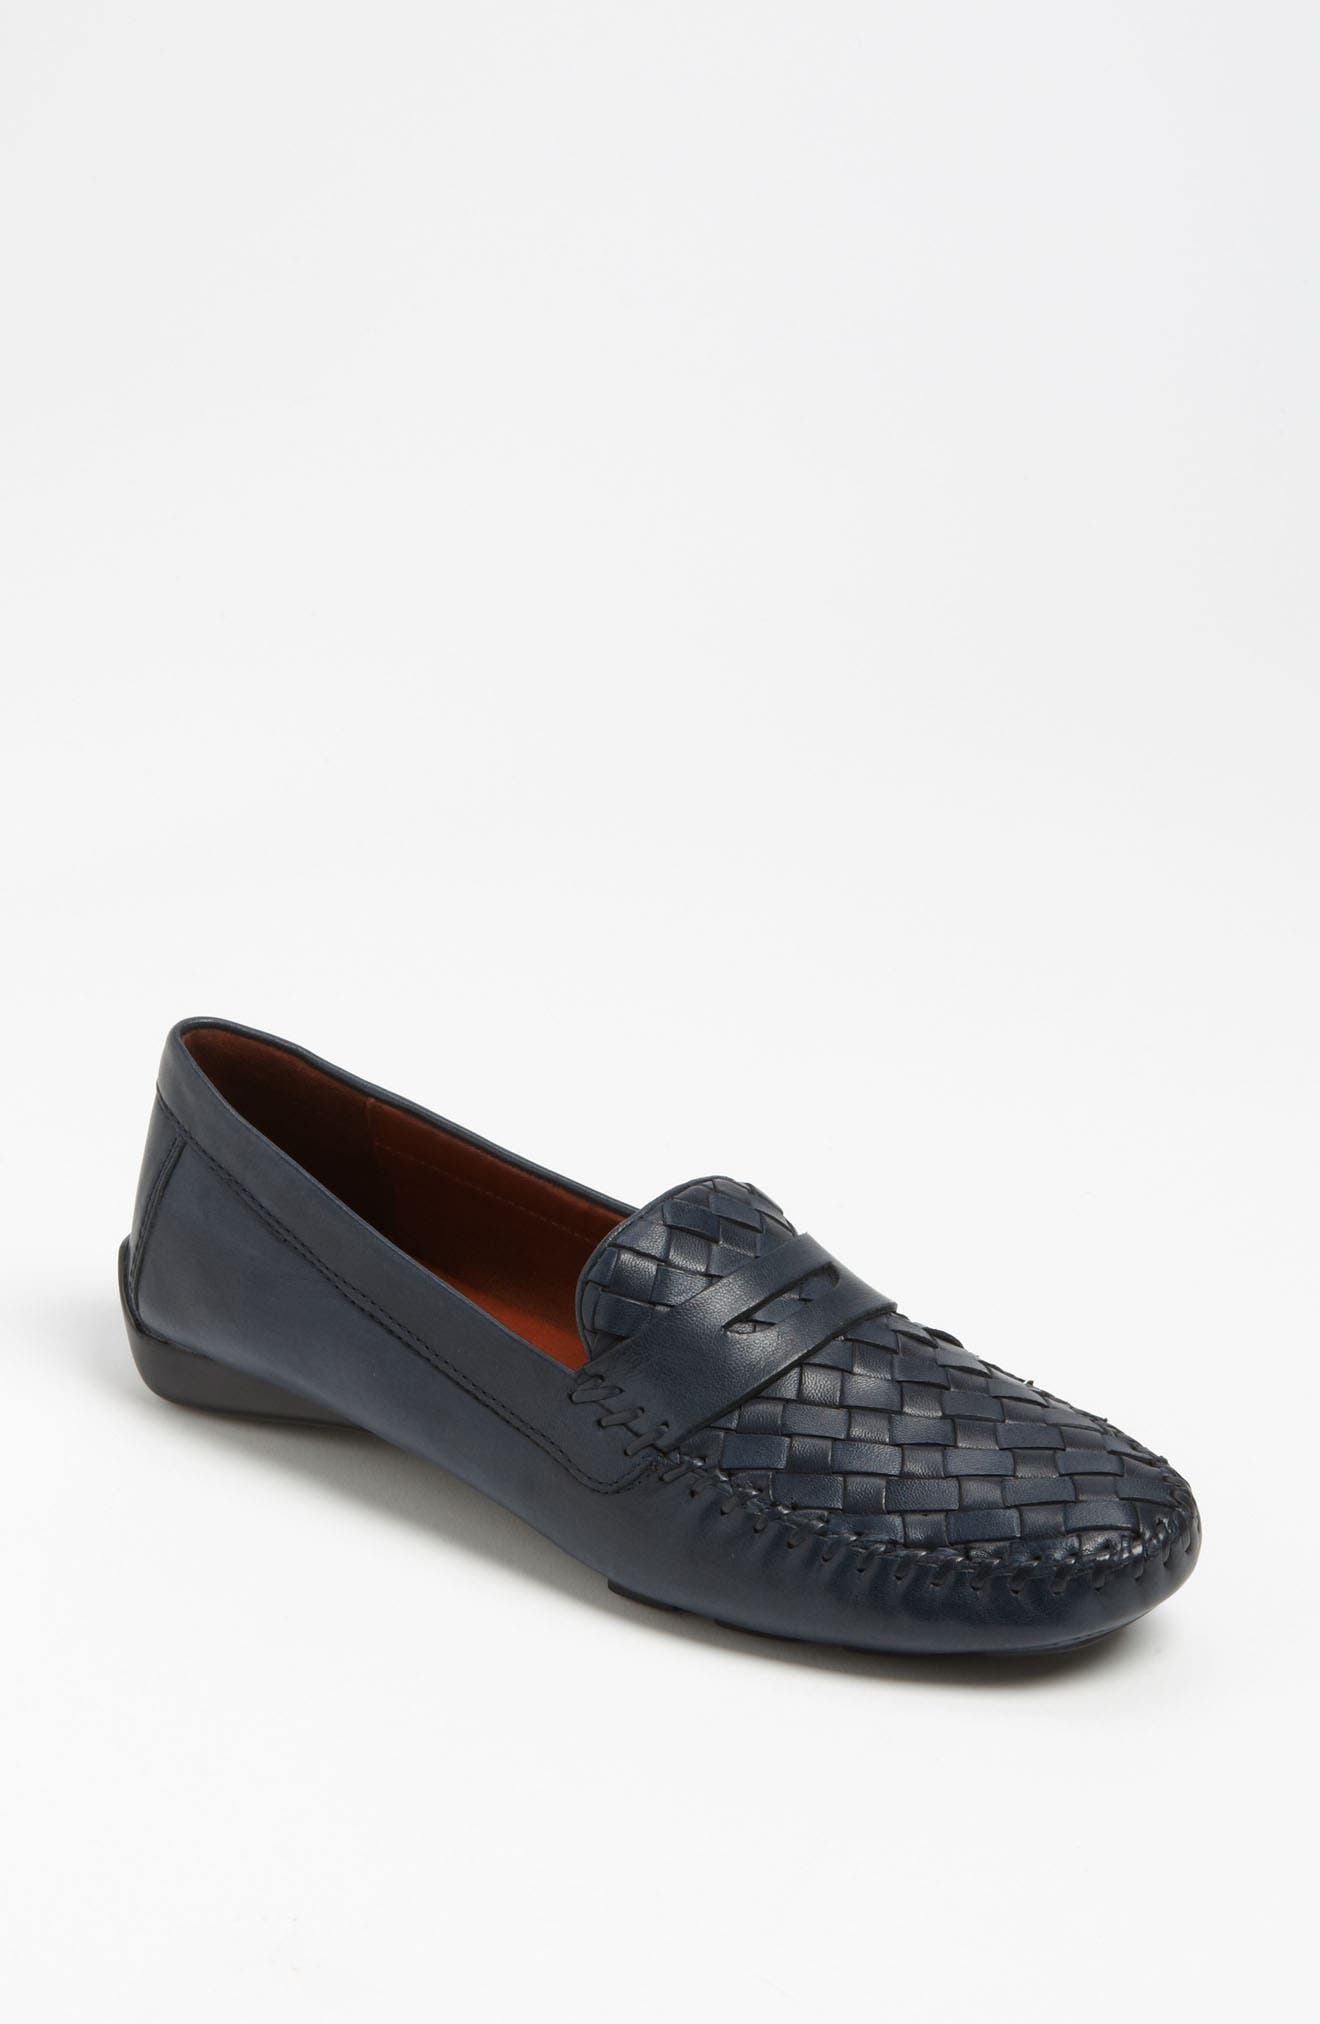 0cf4a0938b5a8 Women's Loafers Comfortable Shoes | Nordstrom